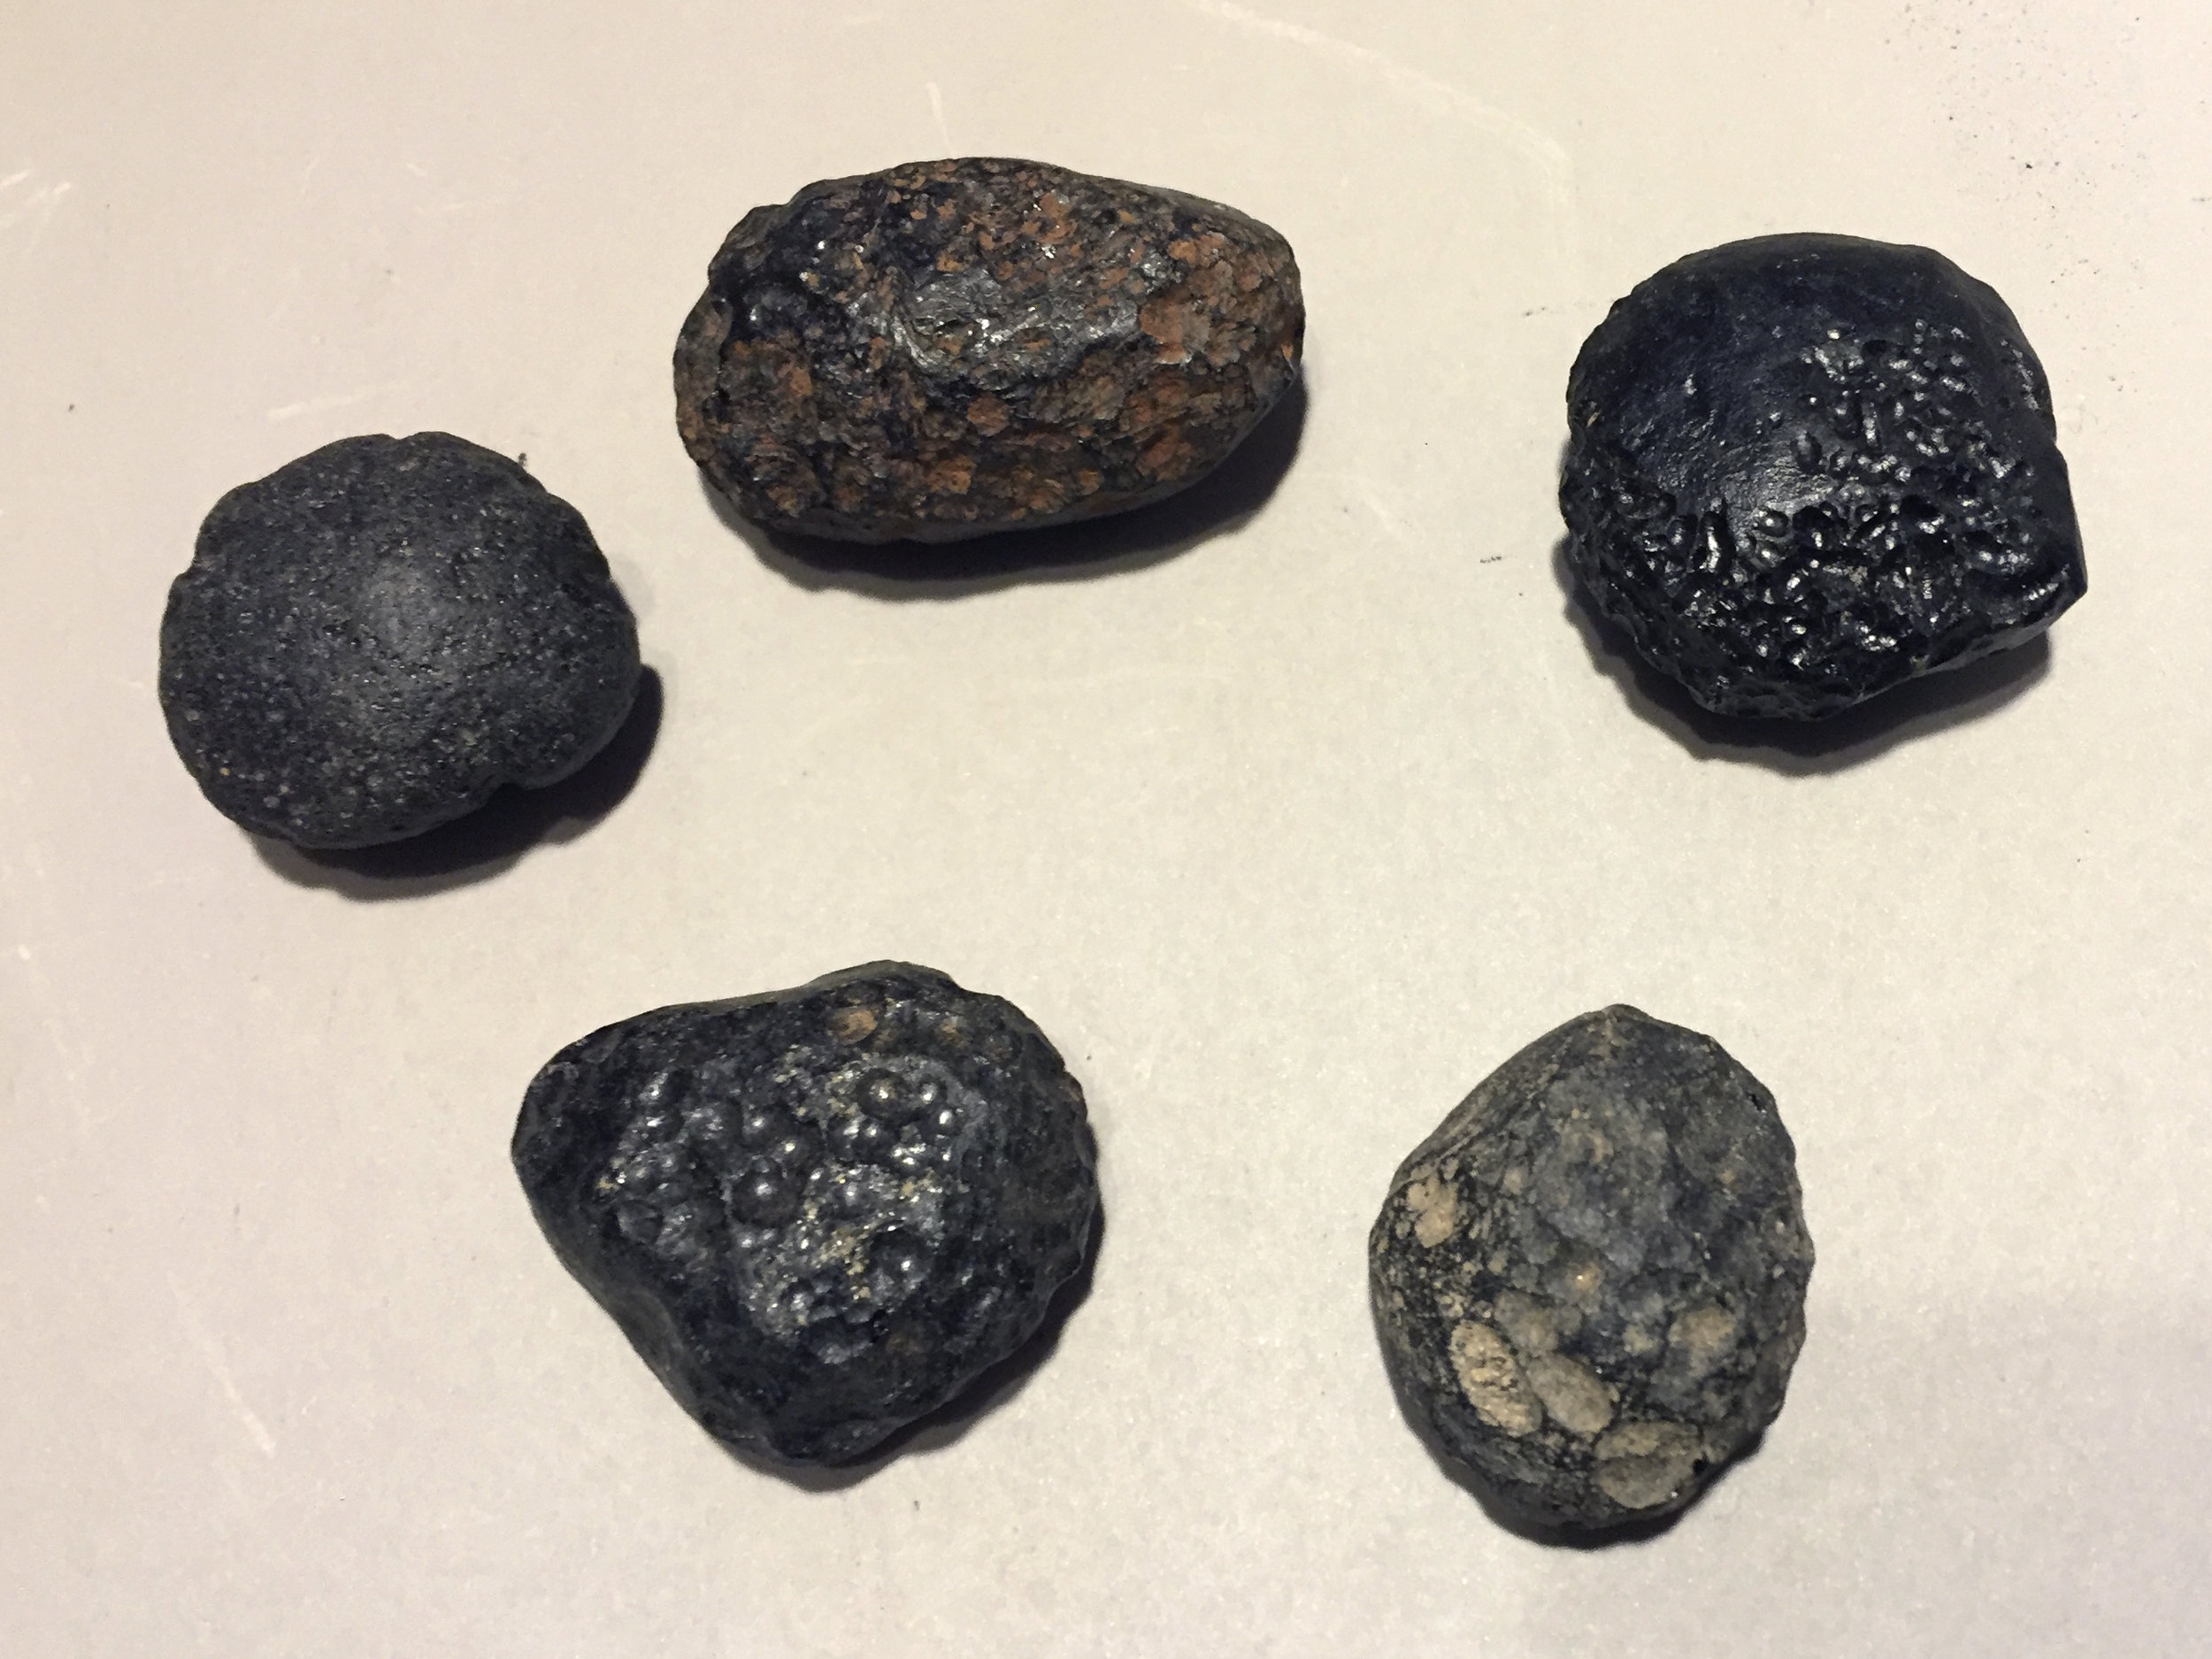 Malaysian tektite -believed to have been formed as molten debris from meteorite impacts